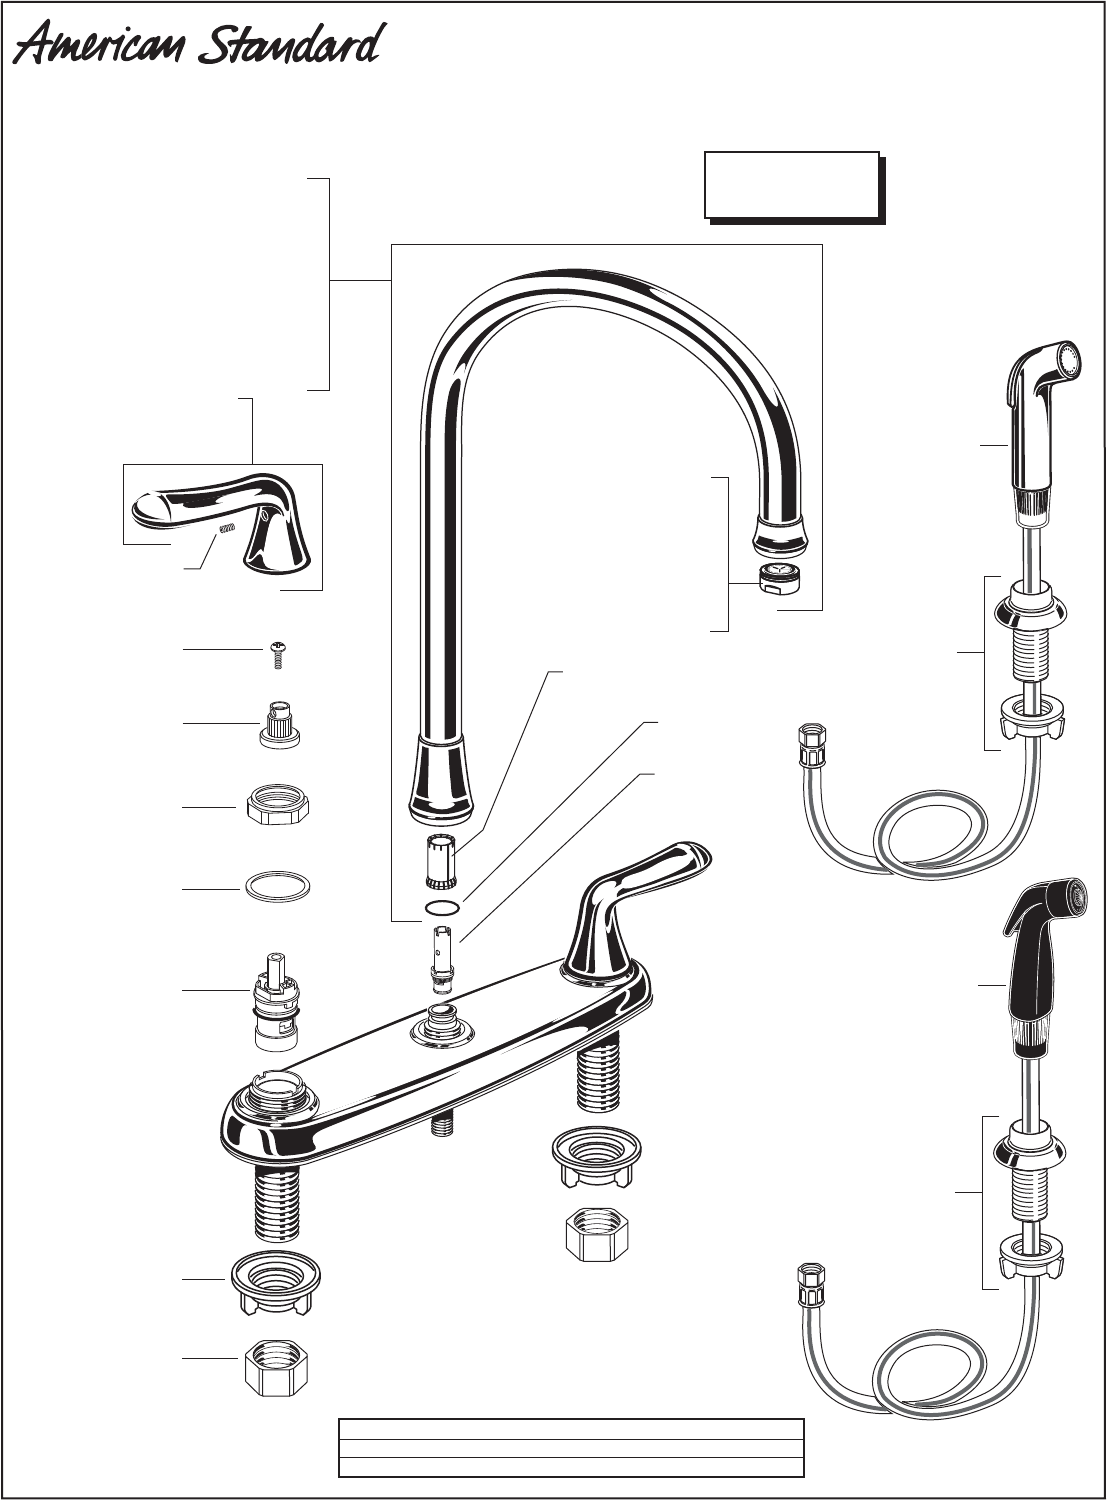 American Standard Outdoor Kitchen Island Kitchen Faucet